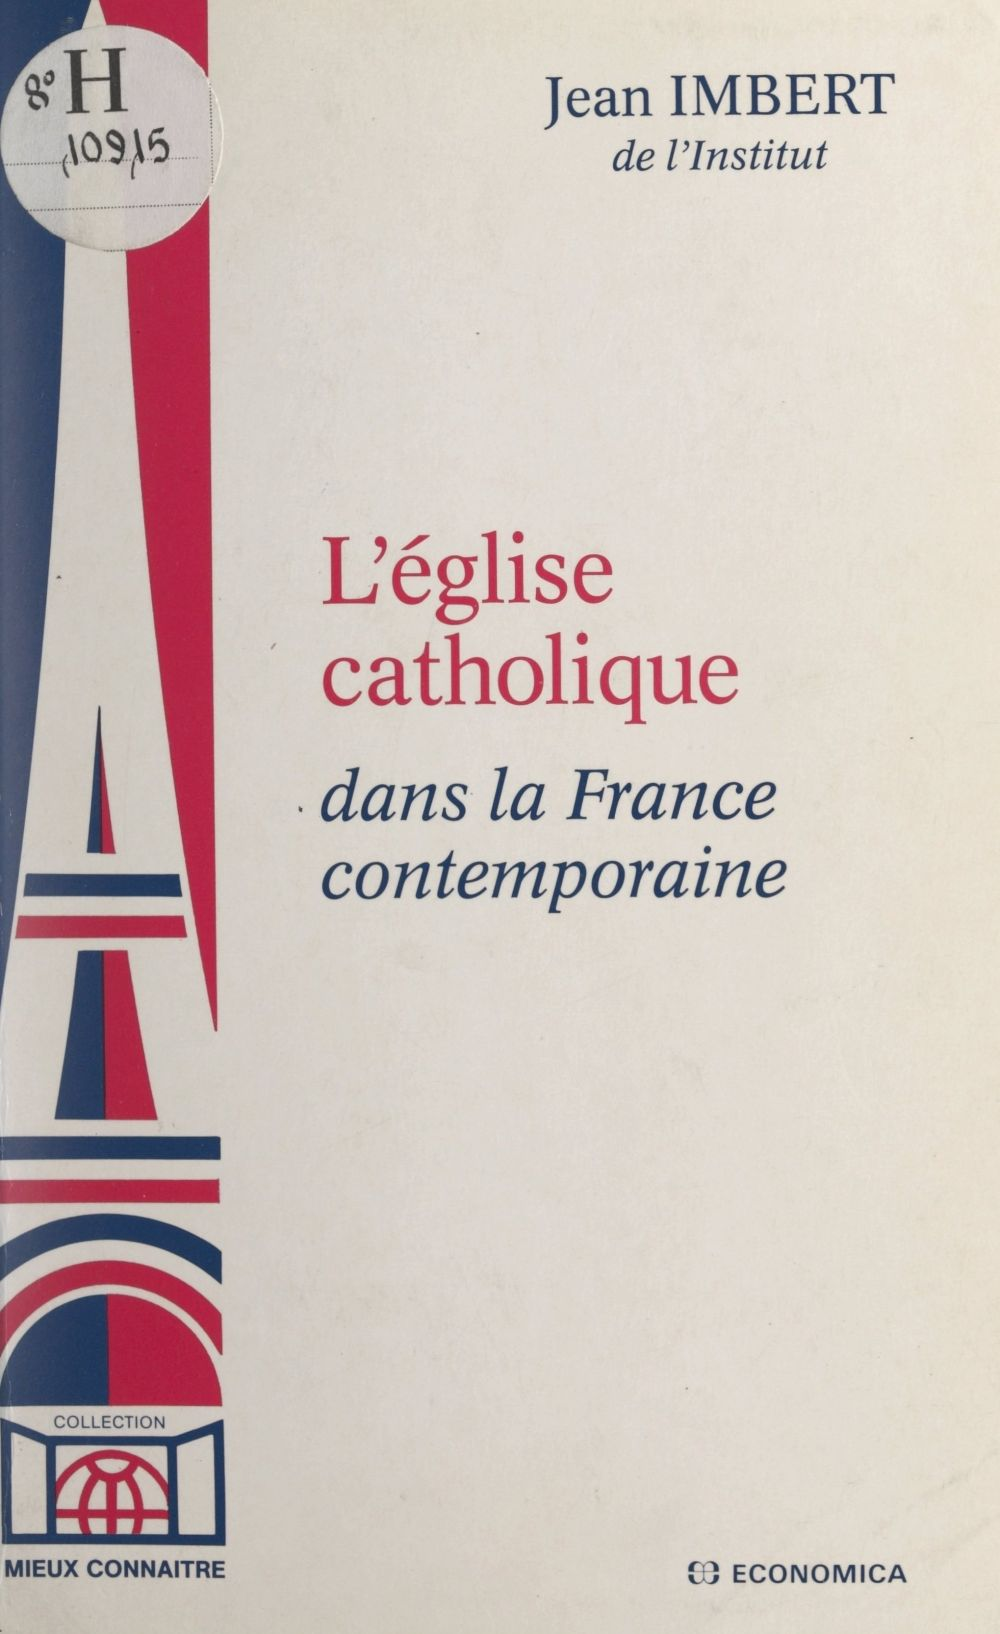 L'église catholique dans la France contemporaine